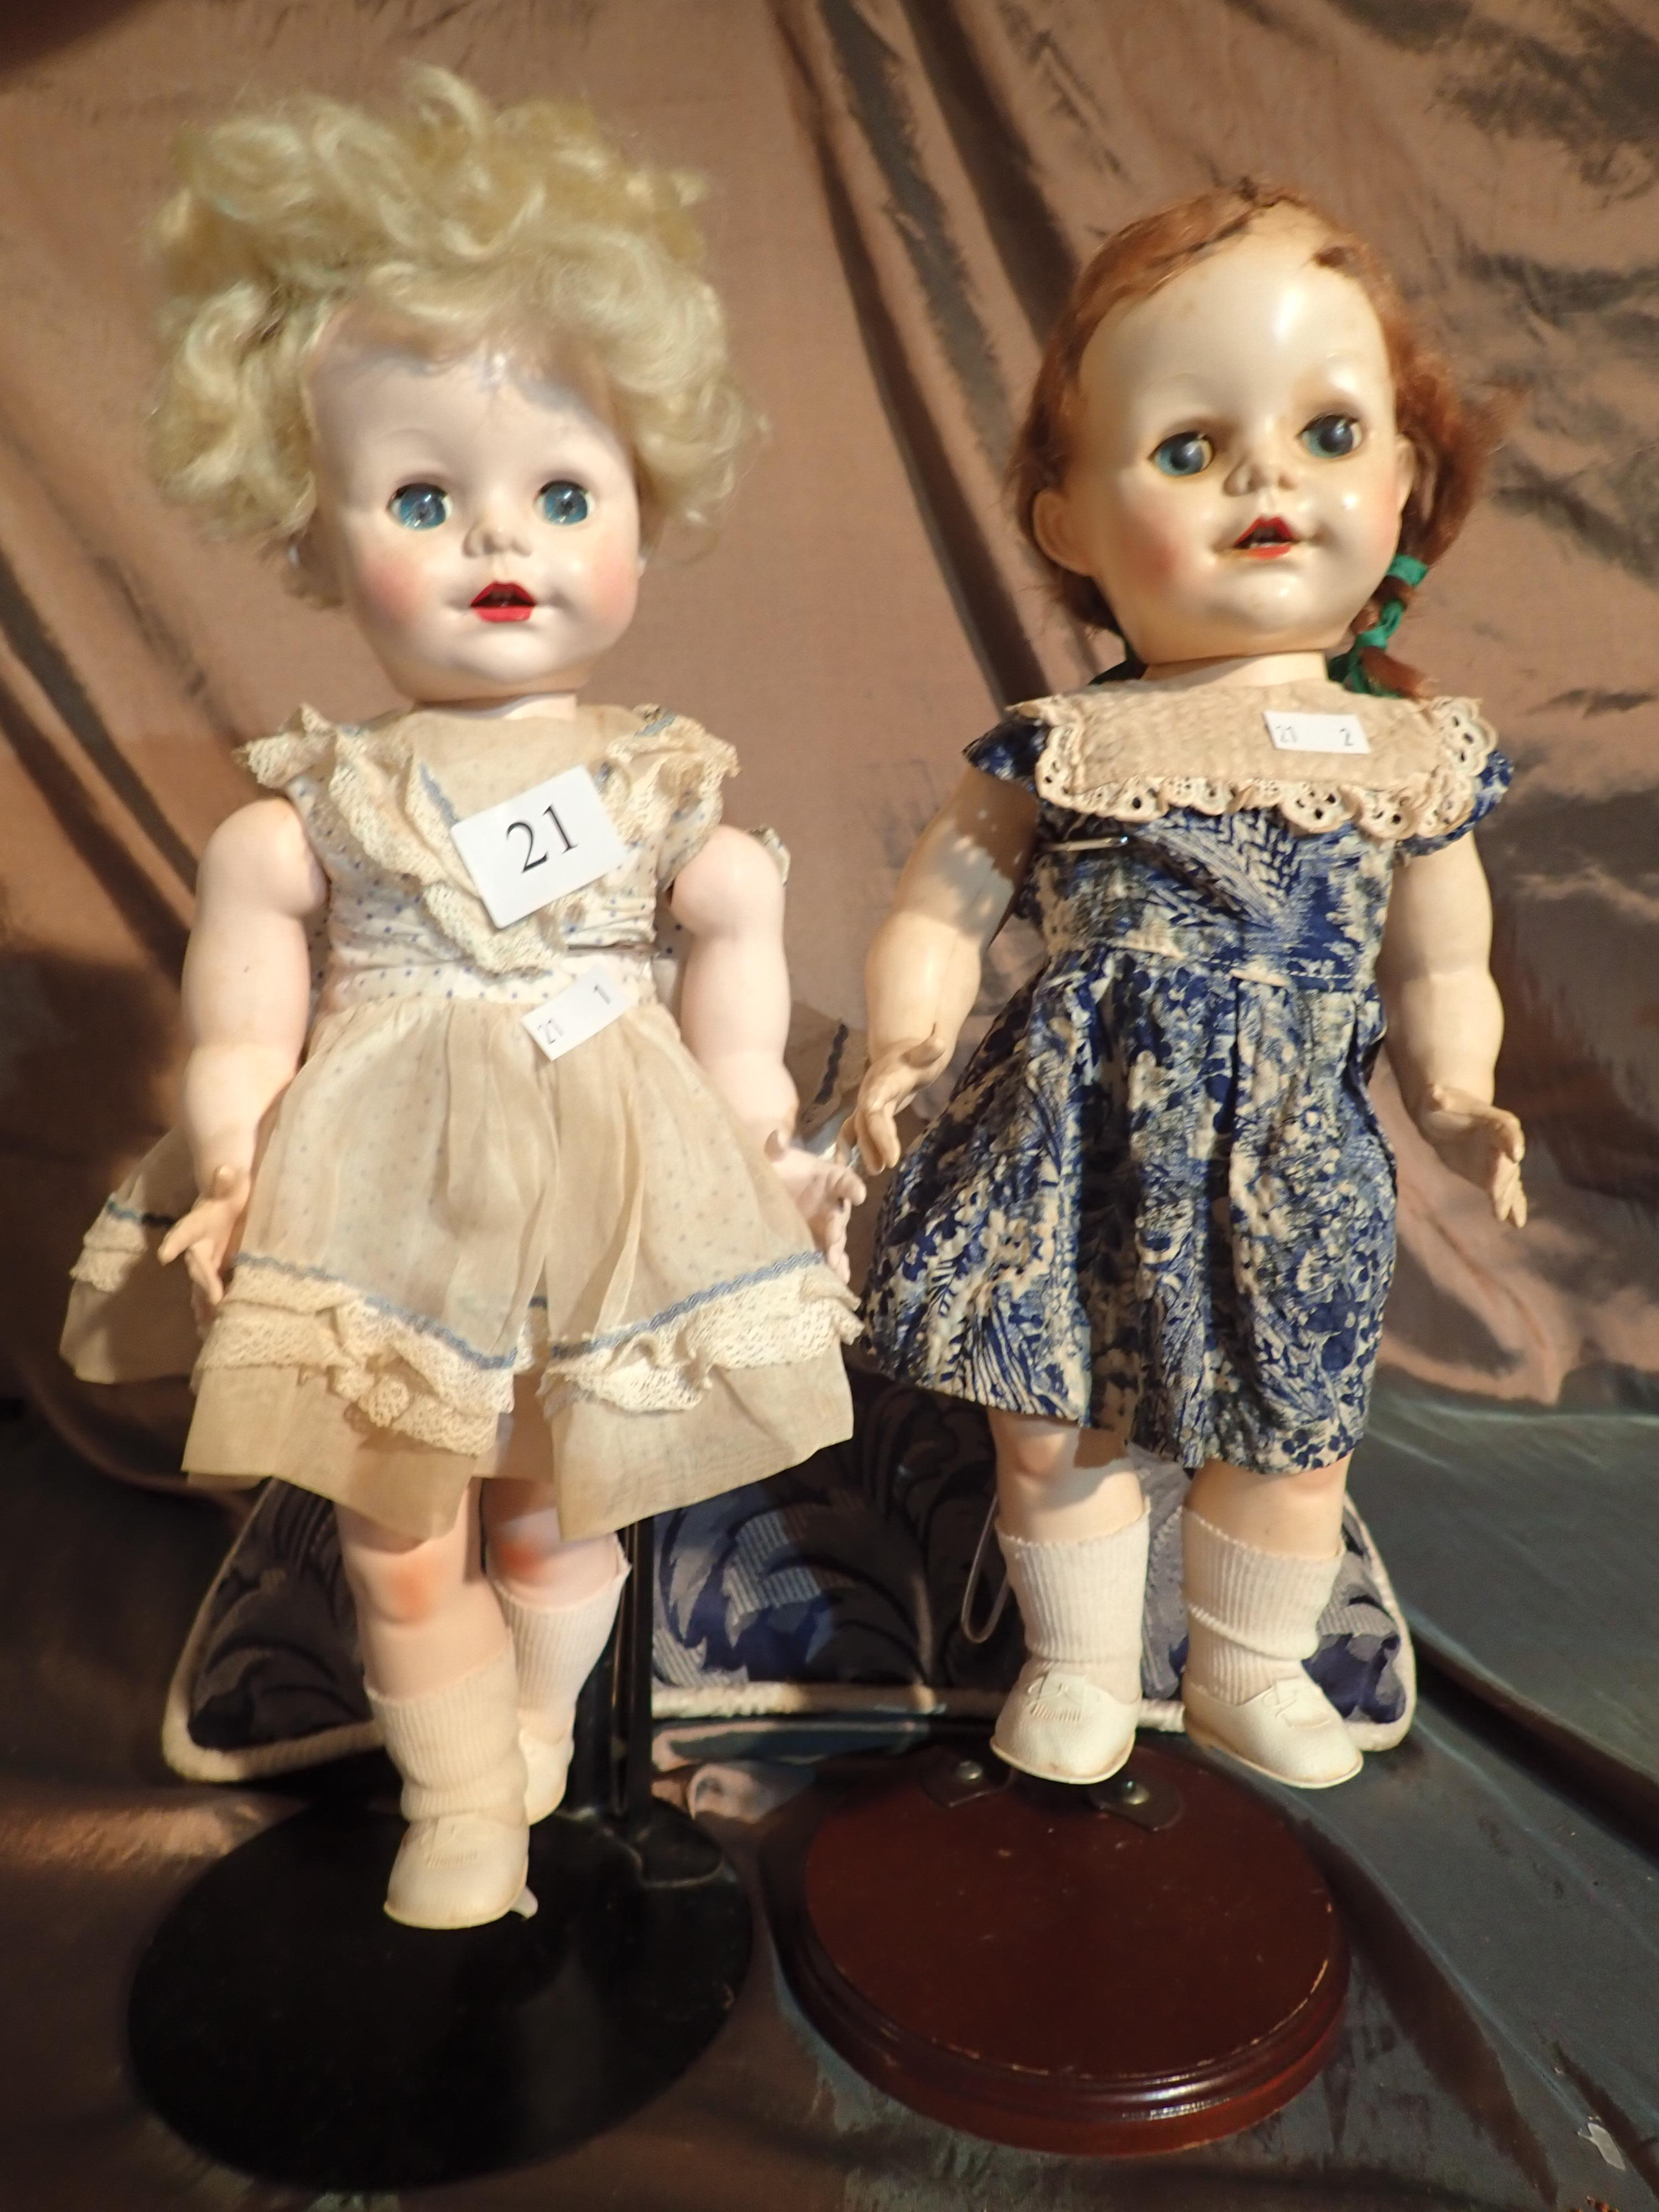 """2 PEDIGREE HARD PLASTIC DOLLS MADE IN ENGLAND (1) IN ORIGINAL DRESS, NEEDS RESTRINGING, IN GOOD OVERALL CONDITION (2) 14"""" LONG IN ORIGINAL DRESS, HAIR BEEN STUCK DOWN, NICE ORIGINAL CONDITION"""